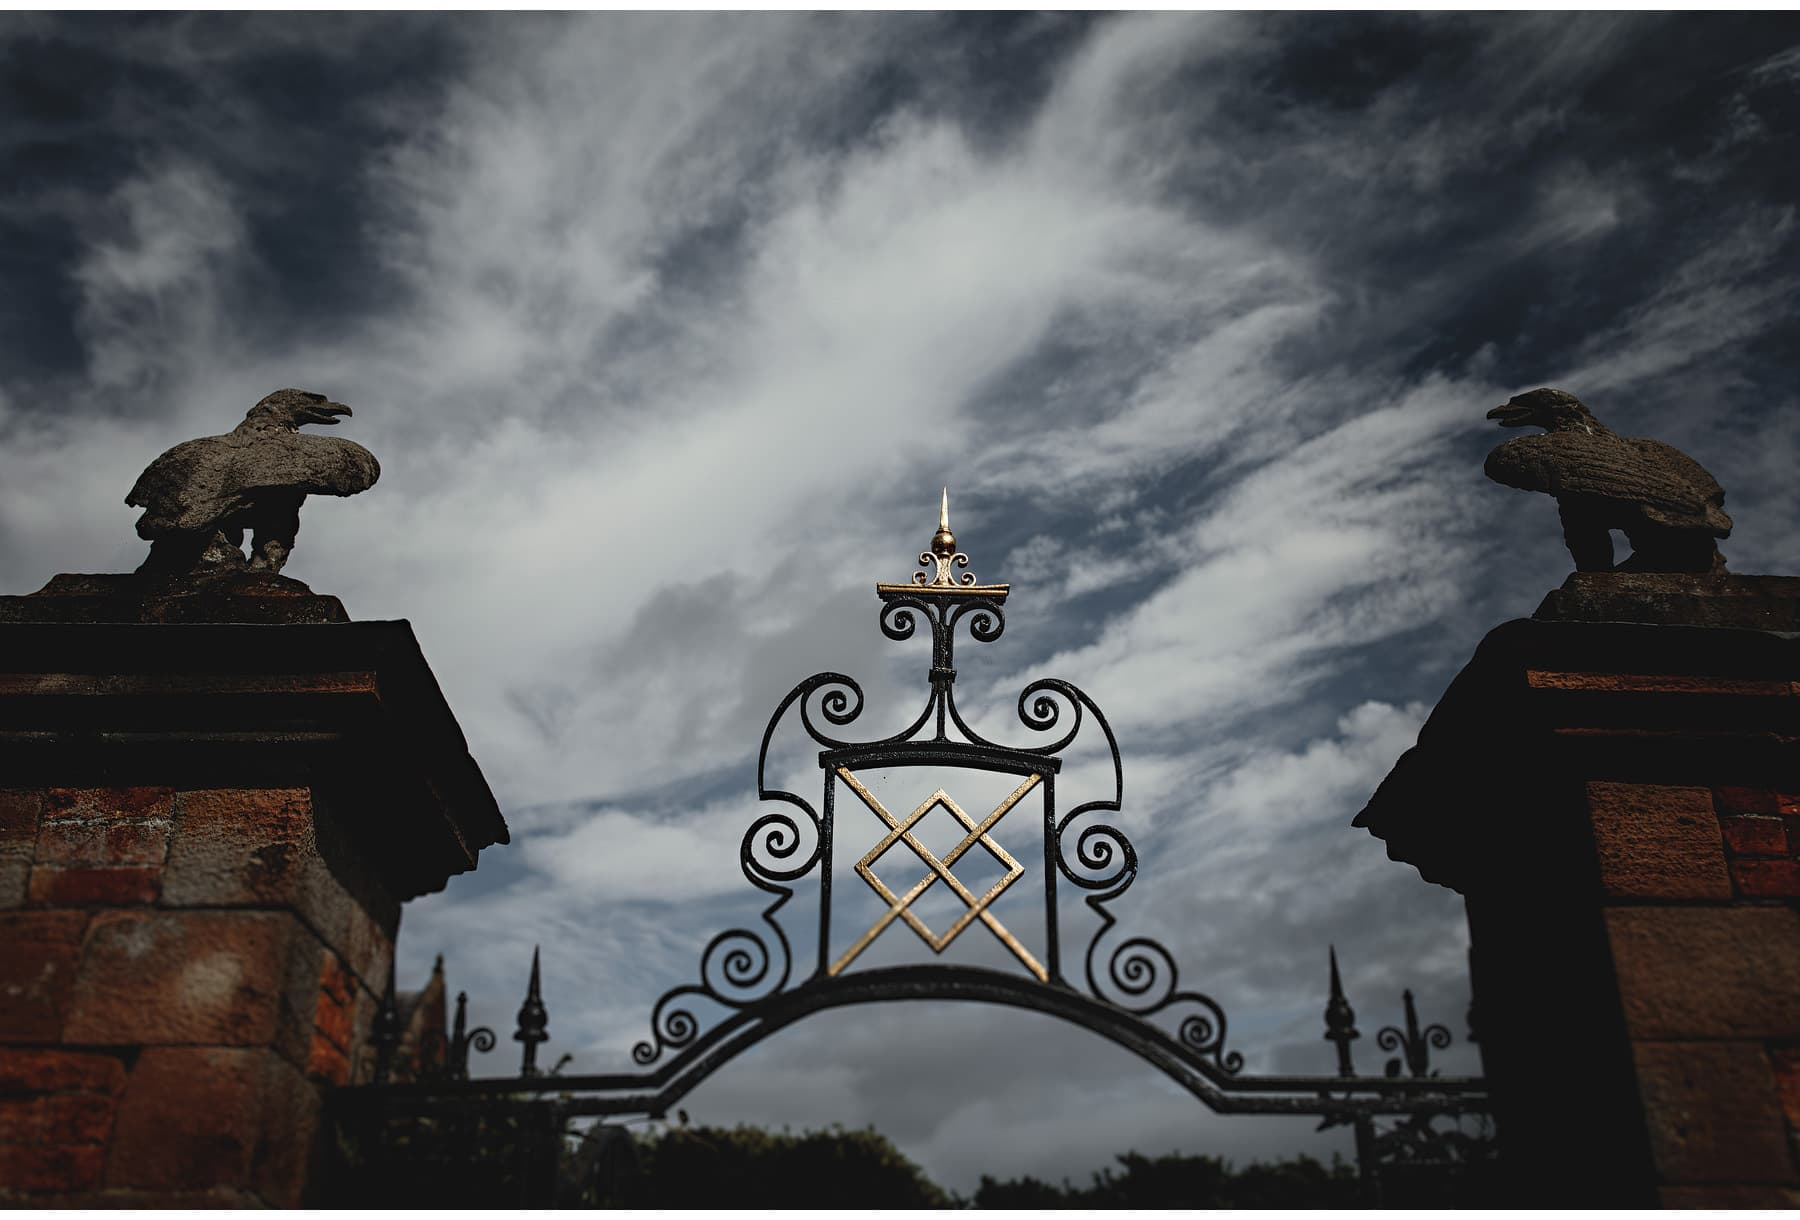 the gates against the dramatic sky